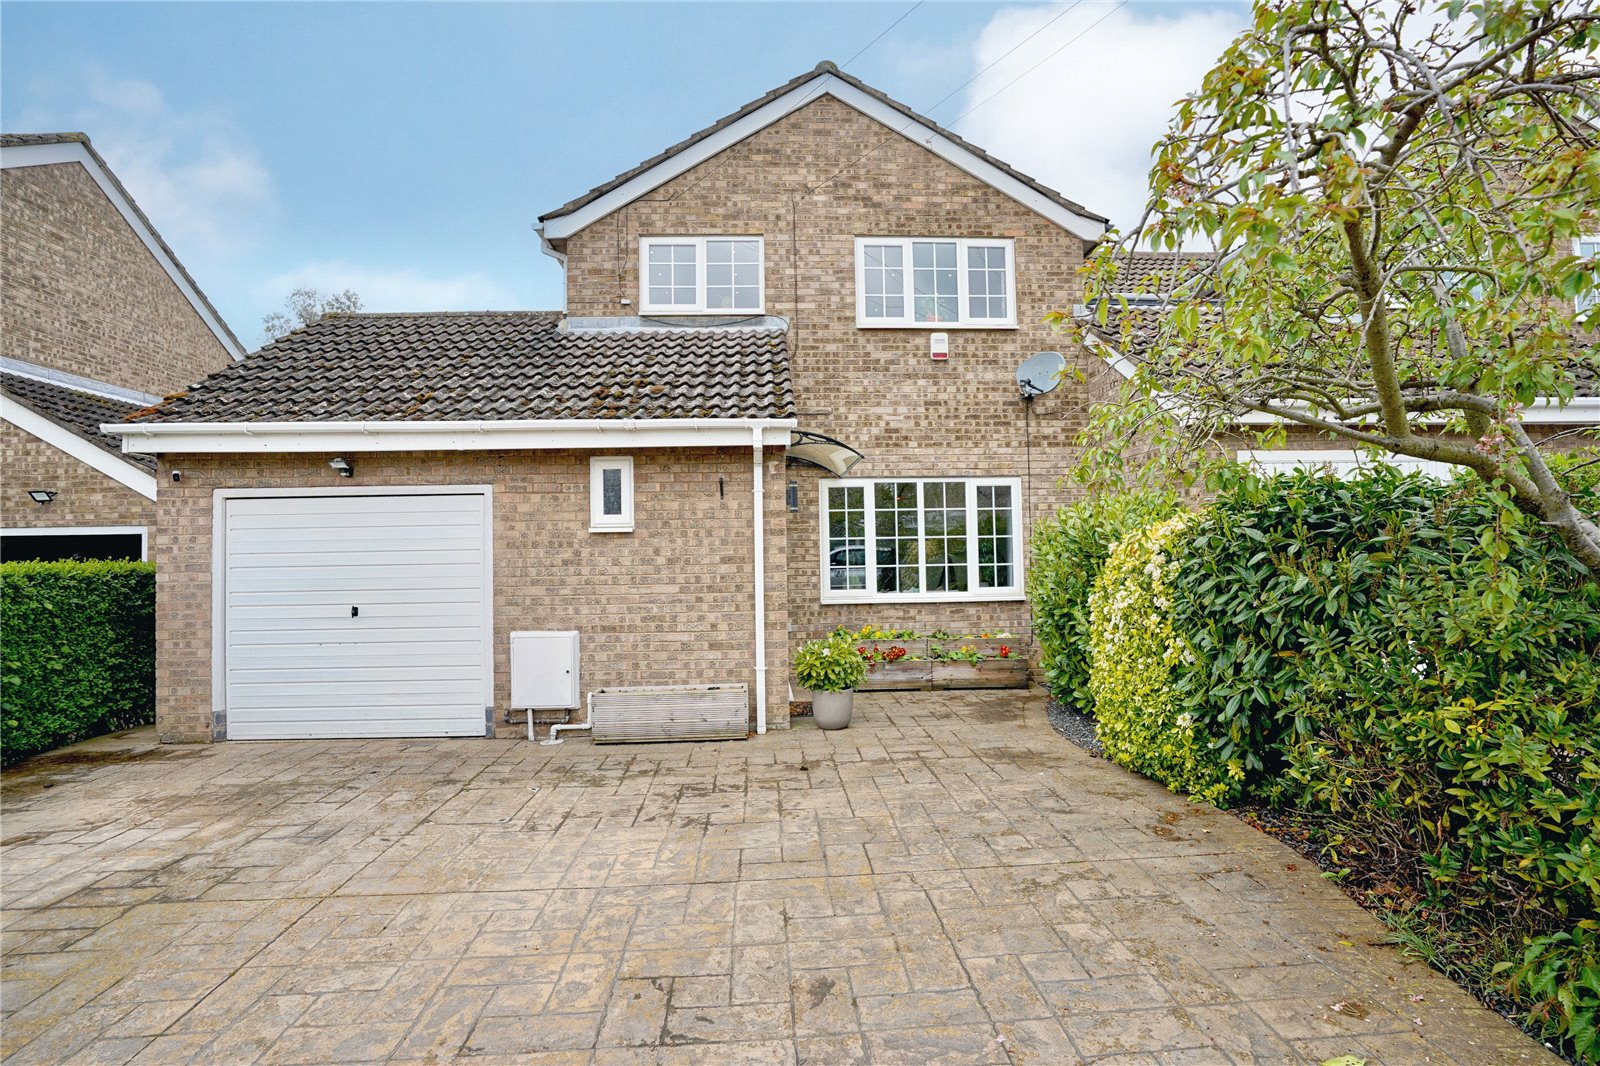 4 bed house for sale in Staughton Place, Eaton Socon - Property Image 1